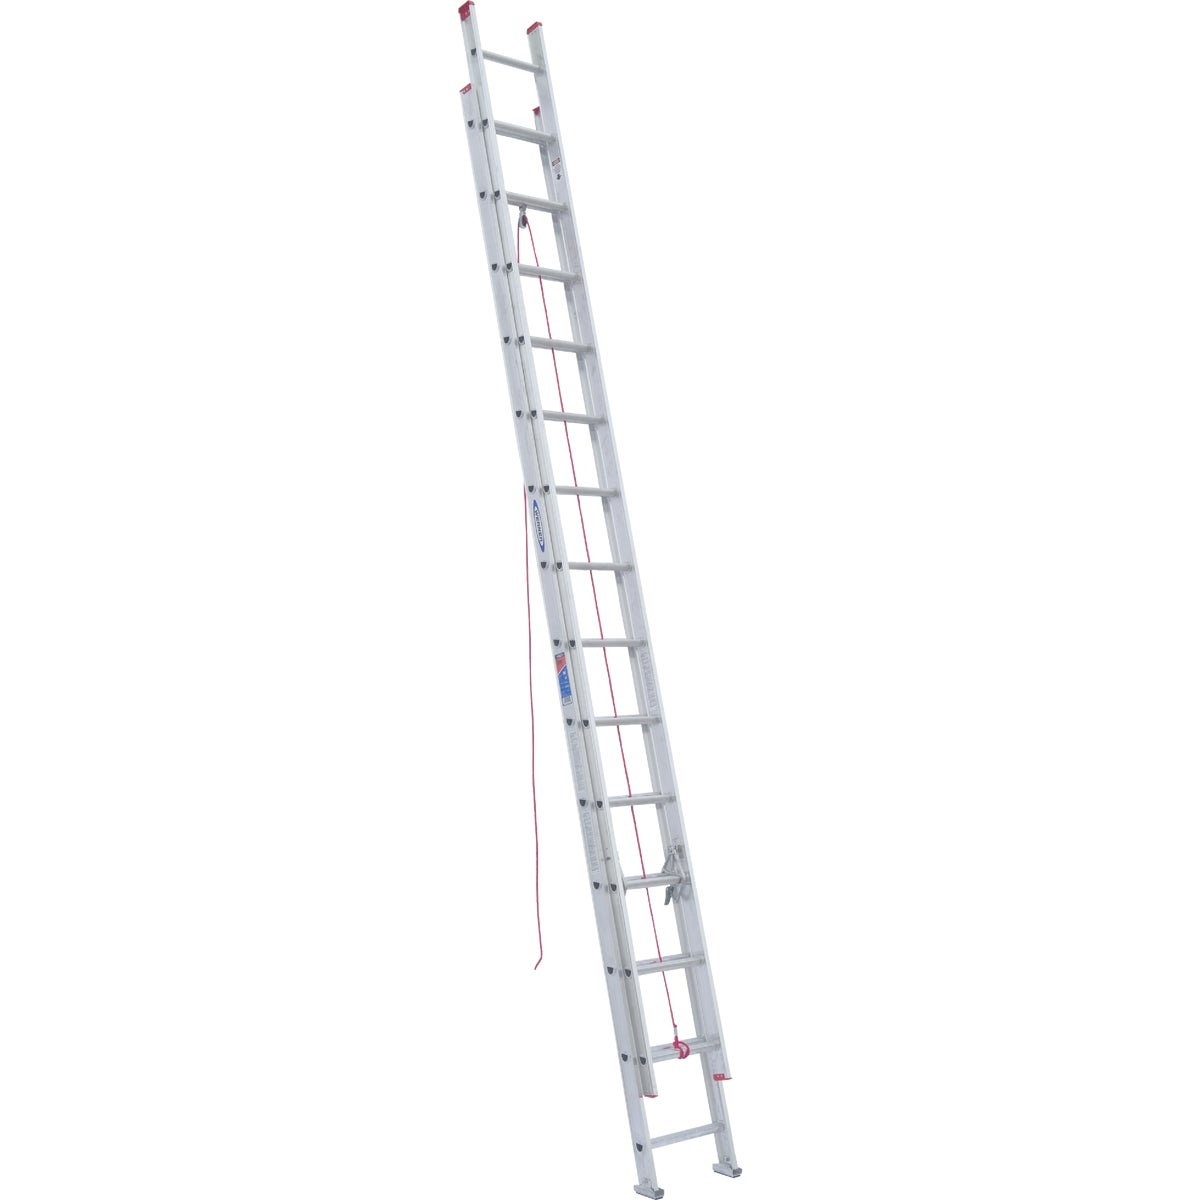 T-3 28' ALUM EXT LADDER - D1128-2 by Werner Ladder